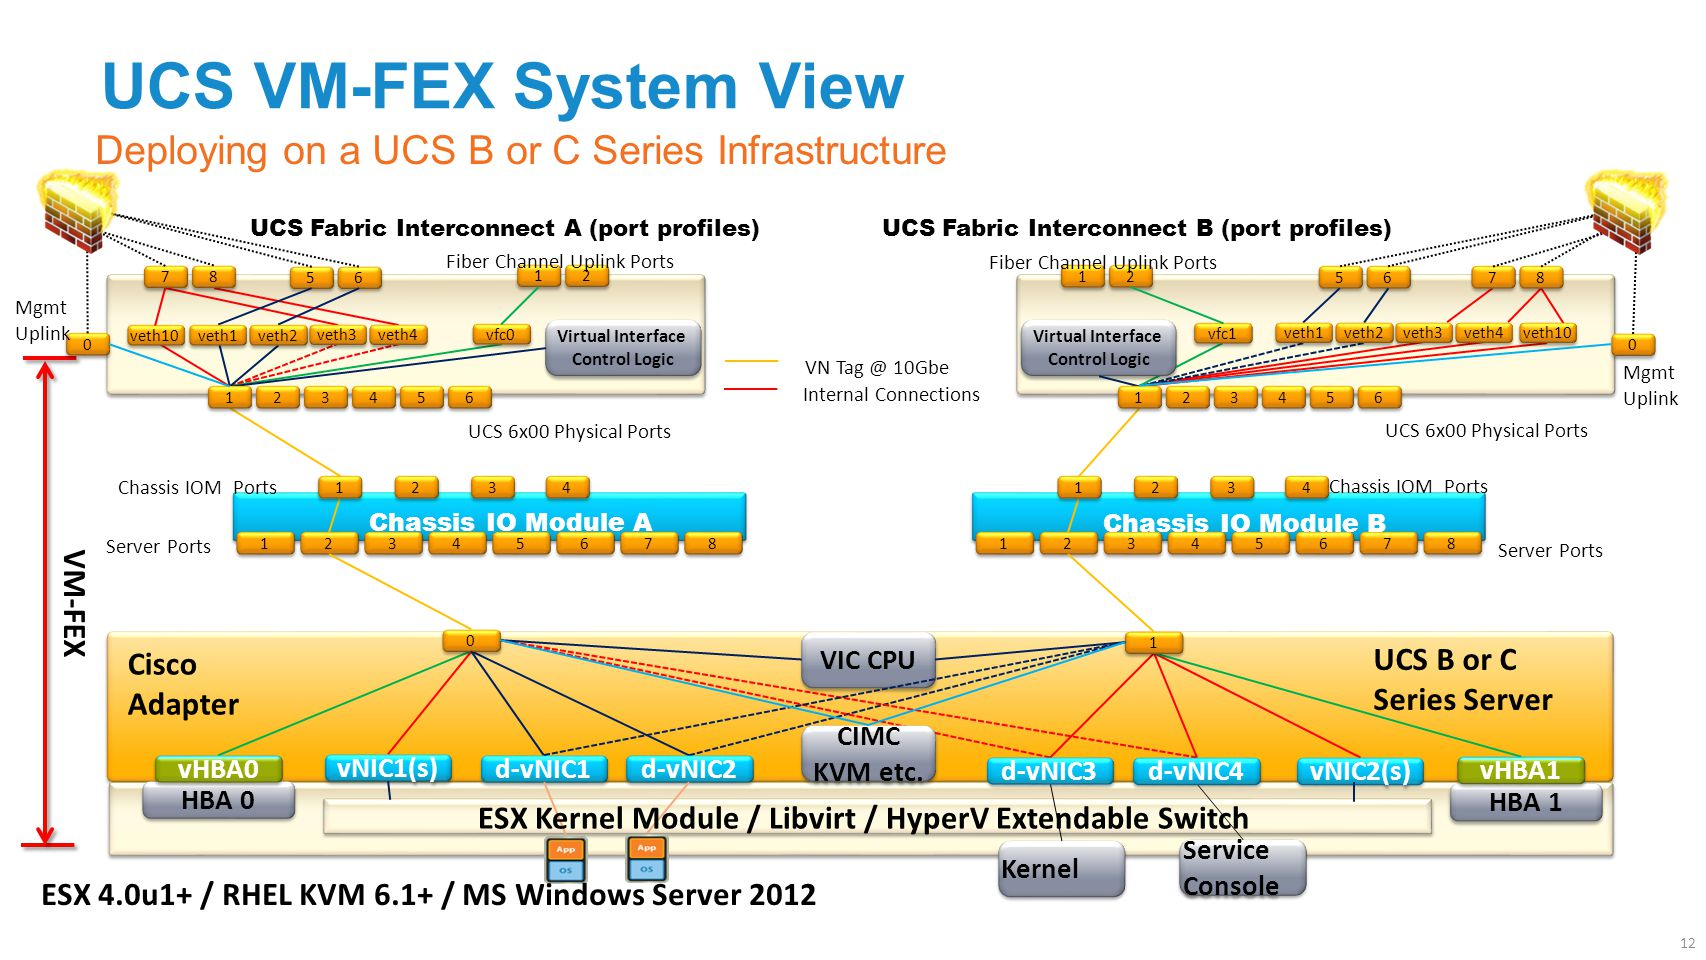 UCS VM-FEX System View Deploying on a UCS B or C Series Infrastructure 3 3 4 4 1 1 3 3 4 4 5 5 6 6 7 7 8 8 Chassis IO Module A 1 1 2 2 Server Ports 3